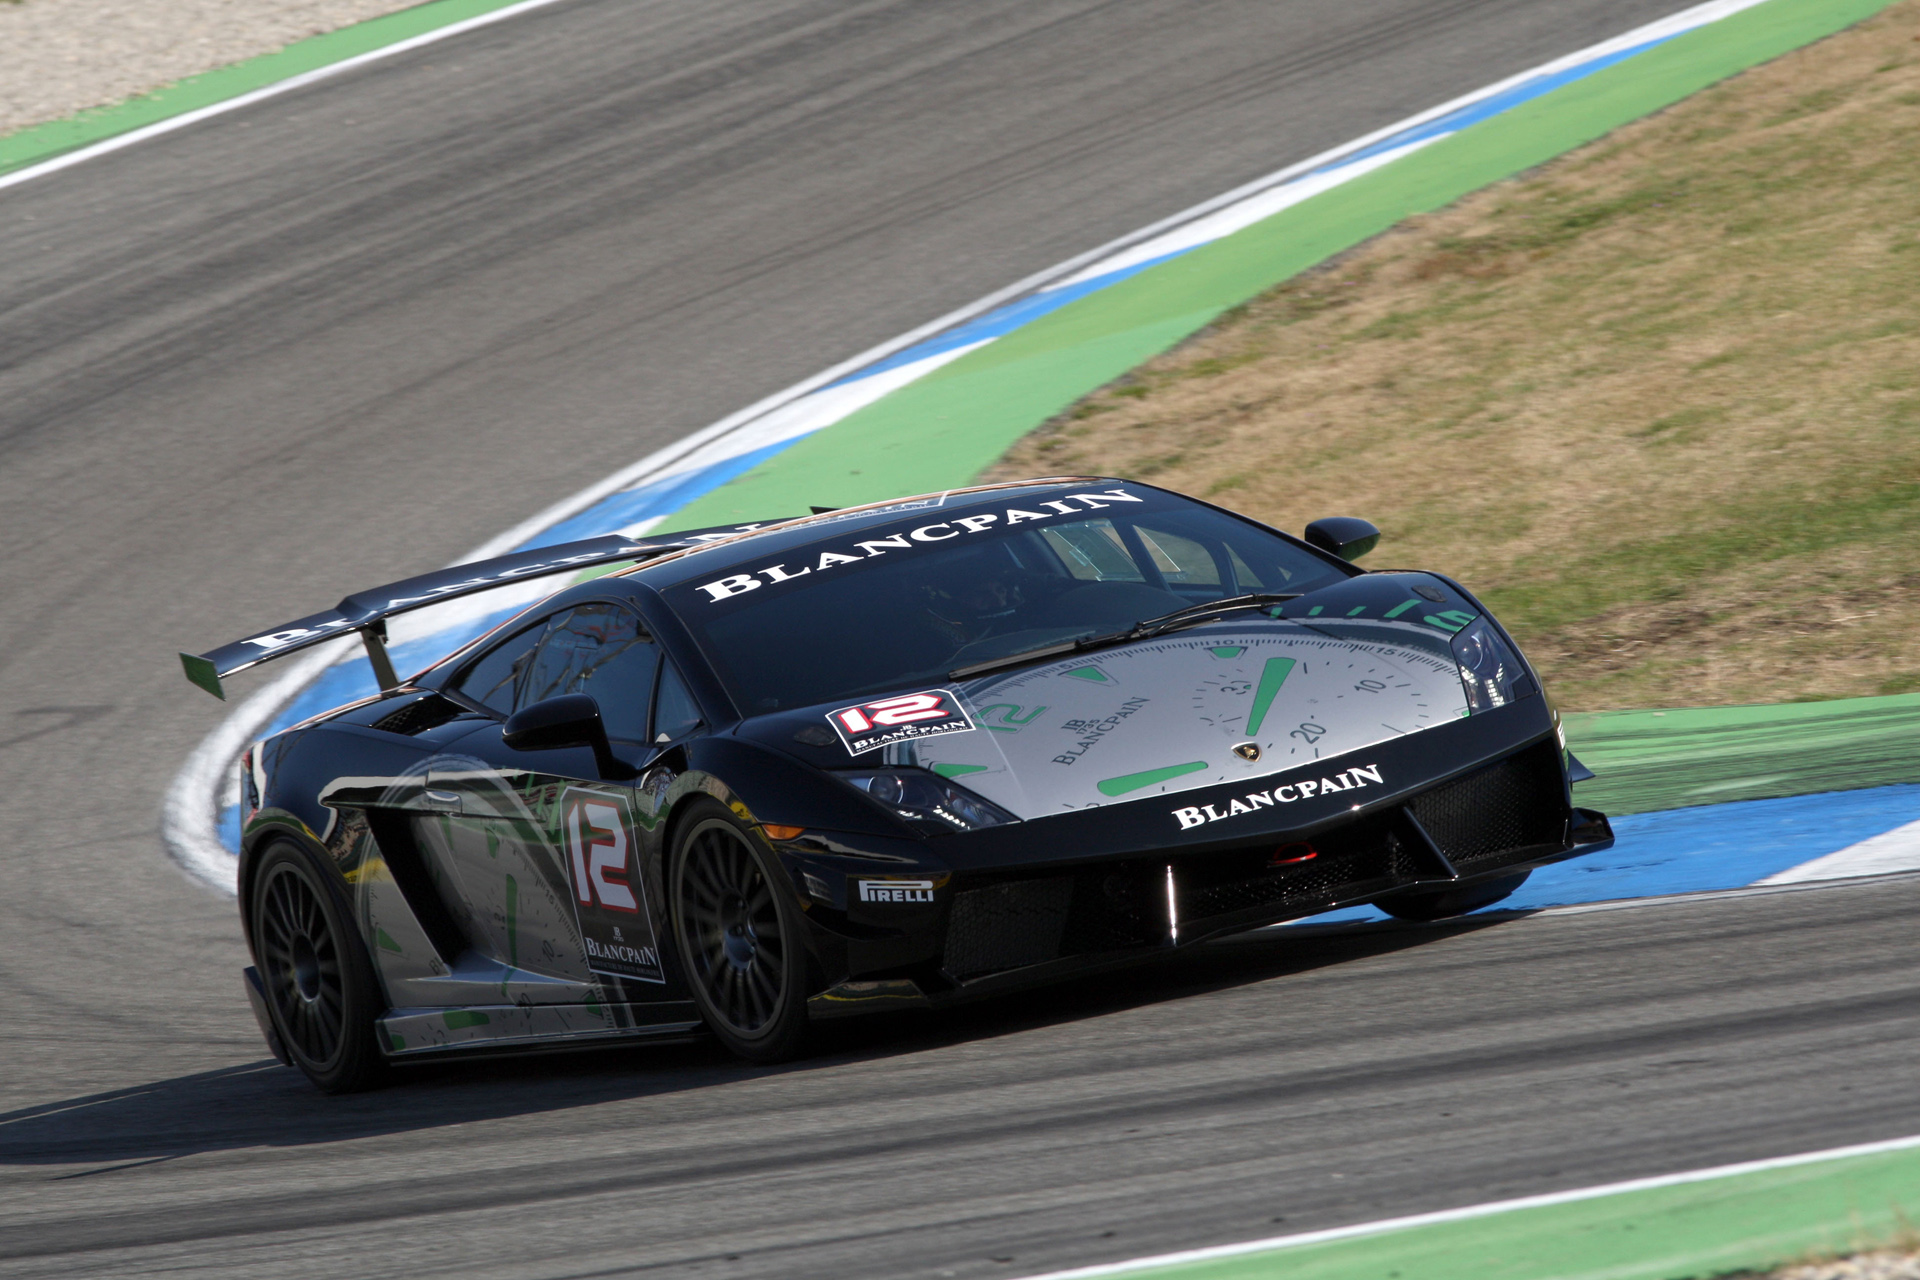 LP560-4 Super Trofeo photo